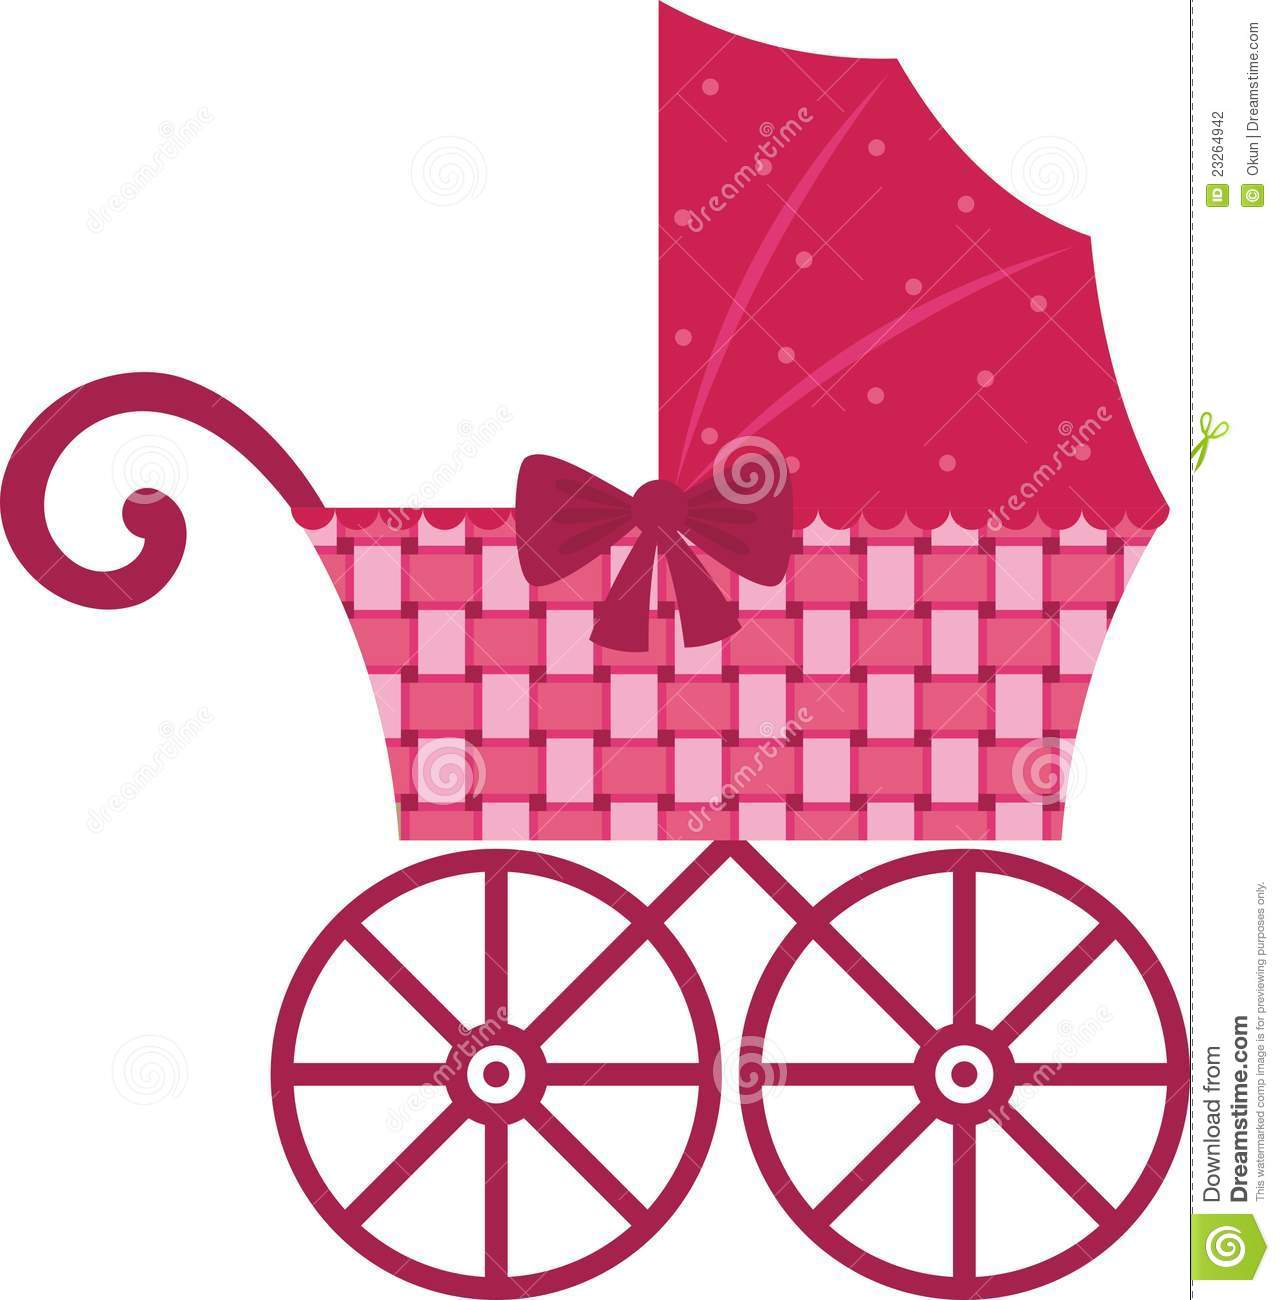 1280x1300 Carriage Clipart Stroller Many Interesting Cliparts